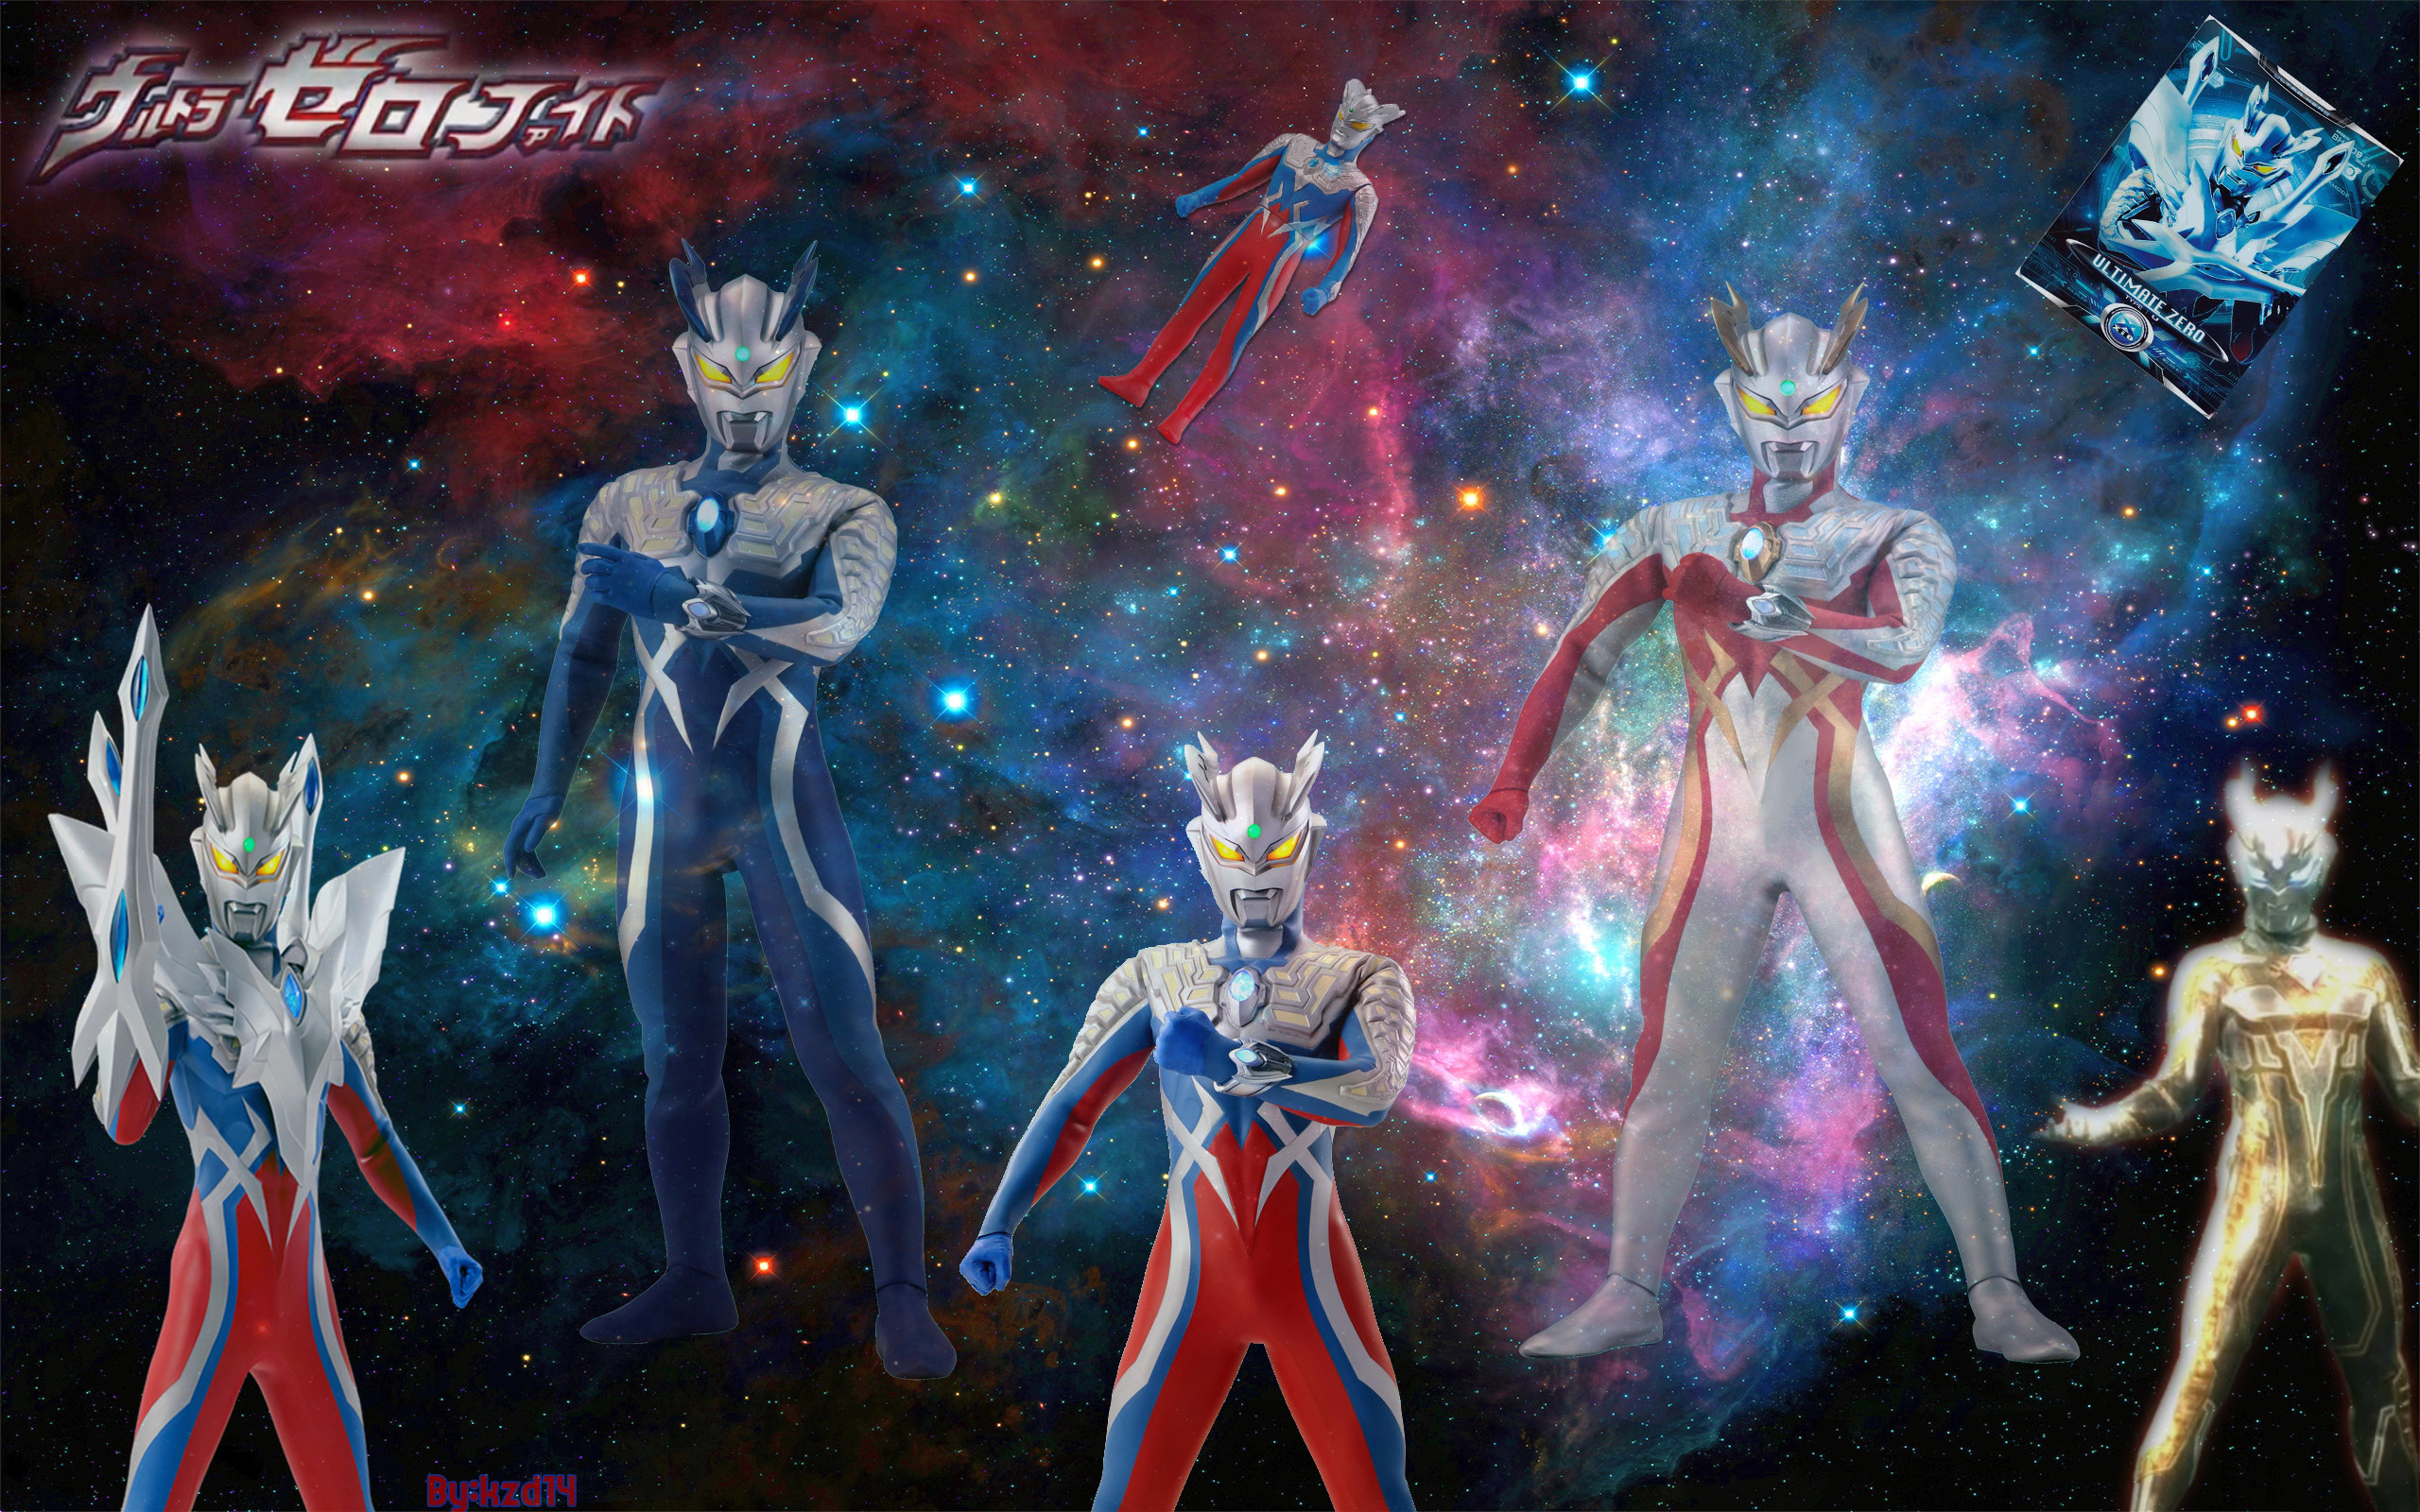 2560x1600 Ultraman zero all form by Kzd14 Ultraman zero all form by Kzd14